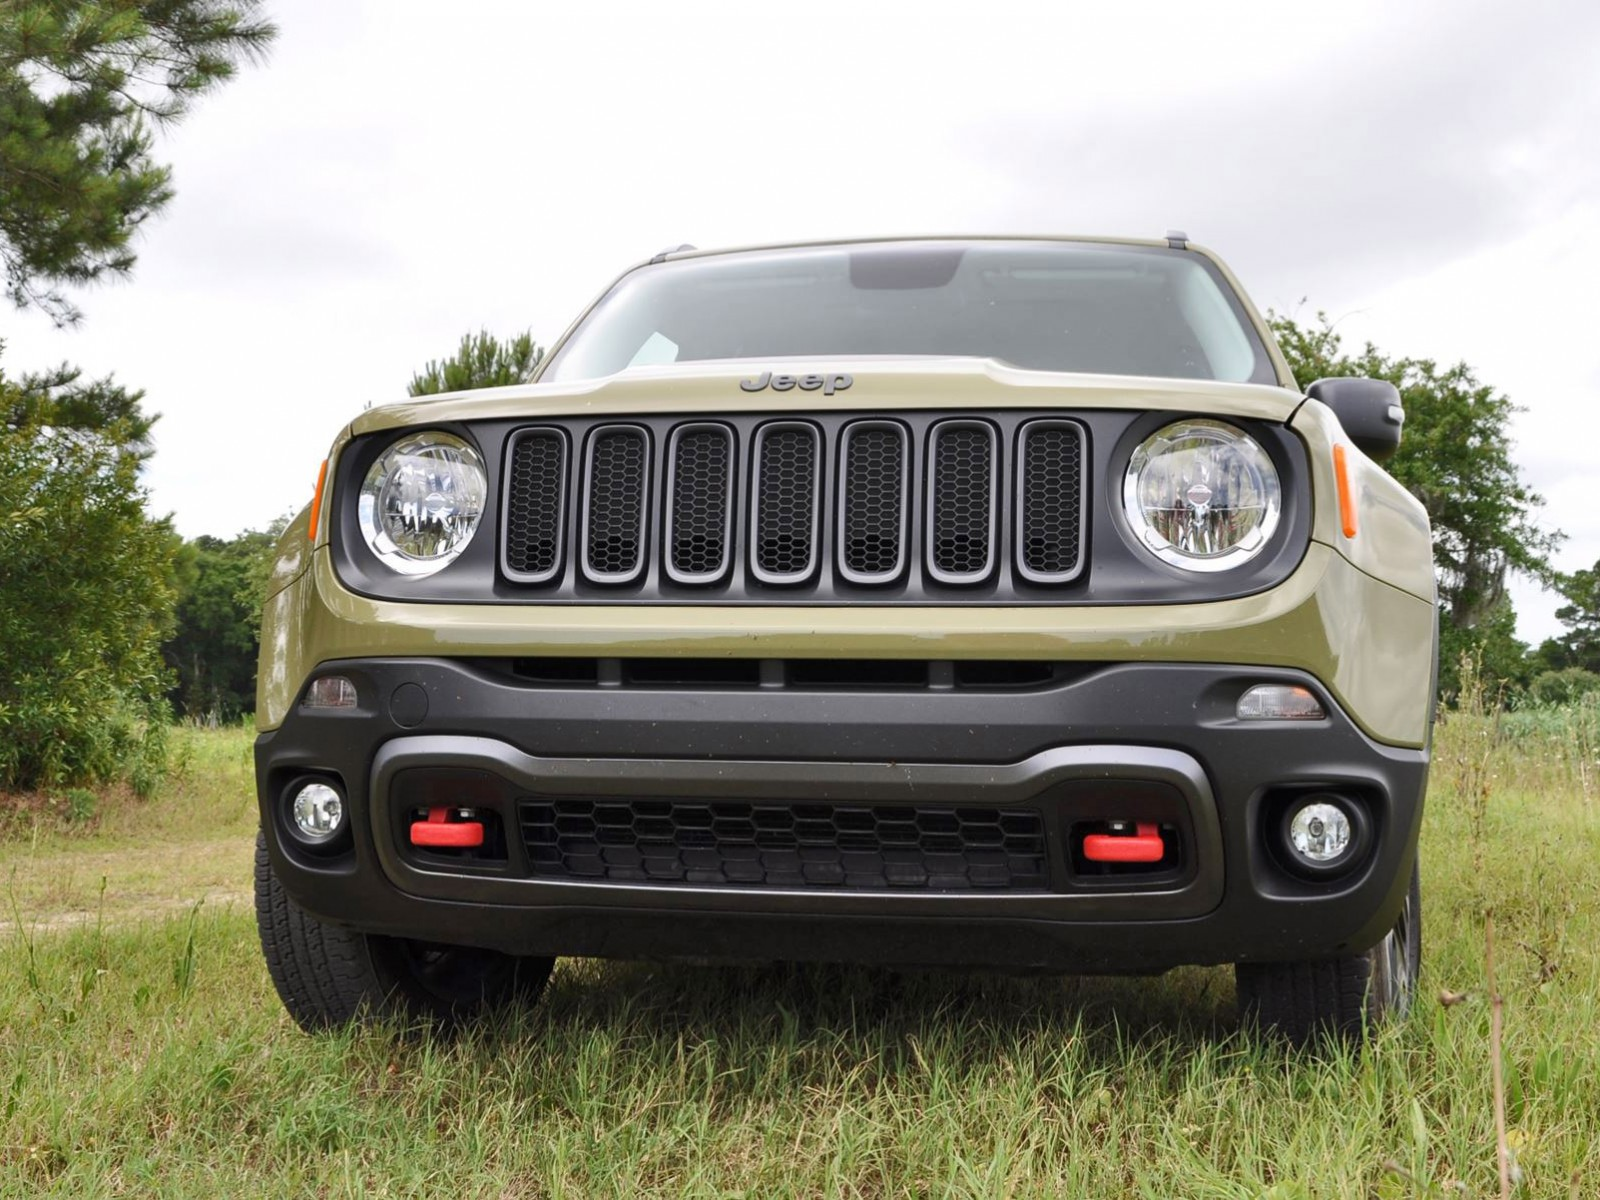 2015 jeep renegade trailhawk review 22. Black Bedroom Furniture Sets. Home Design Ideas